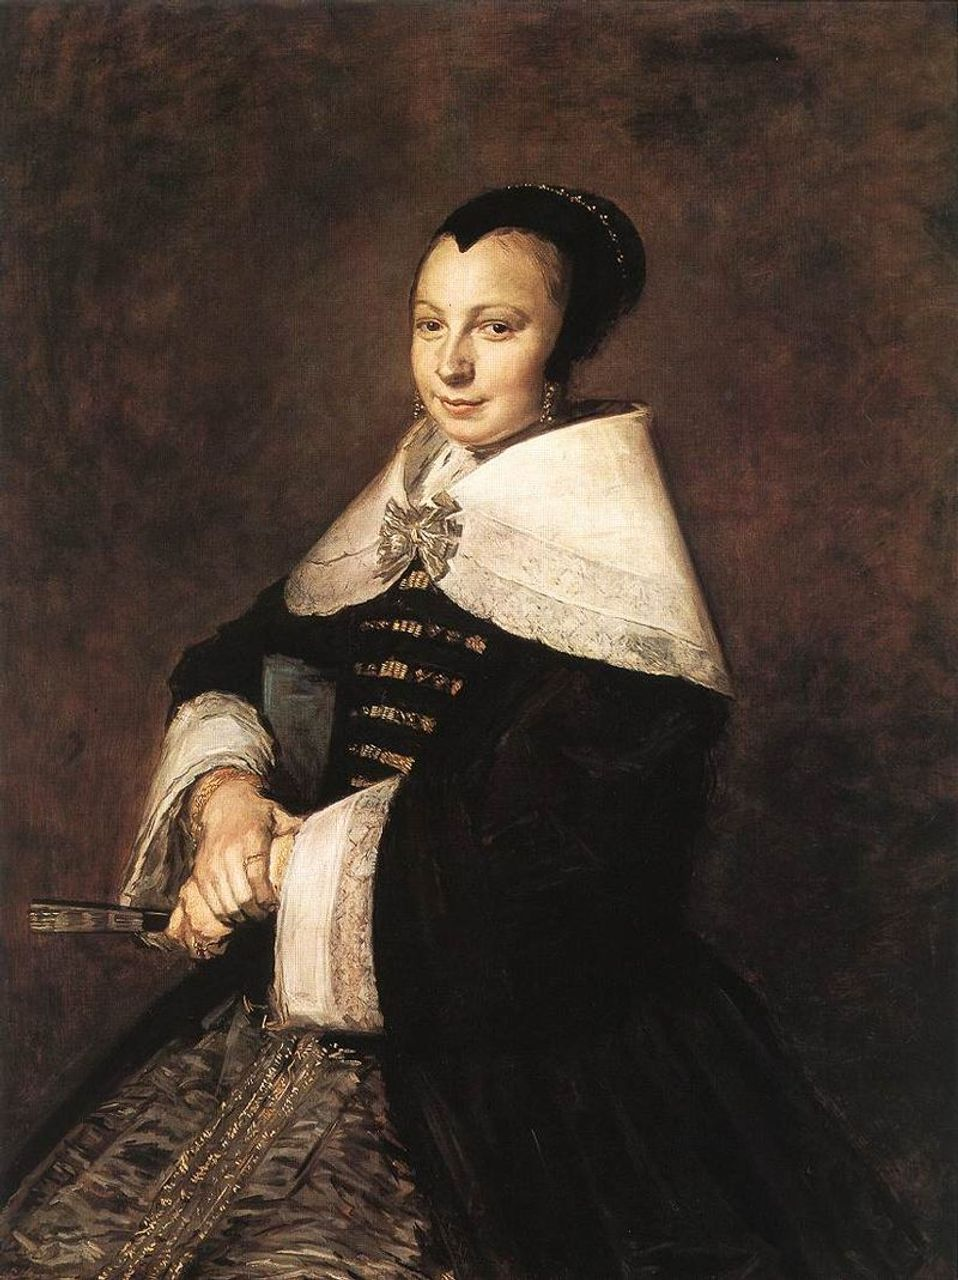 Frans Hals, Portrait of a Seated Woman Holding a Fan, c. 1650, Taft Museum of Art, Cincinnati, Ohio